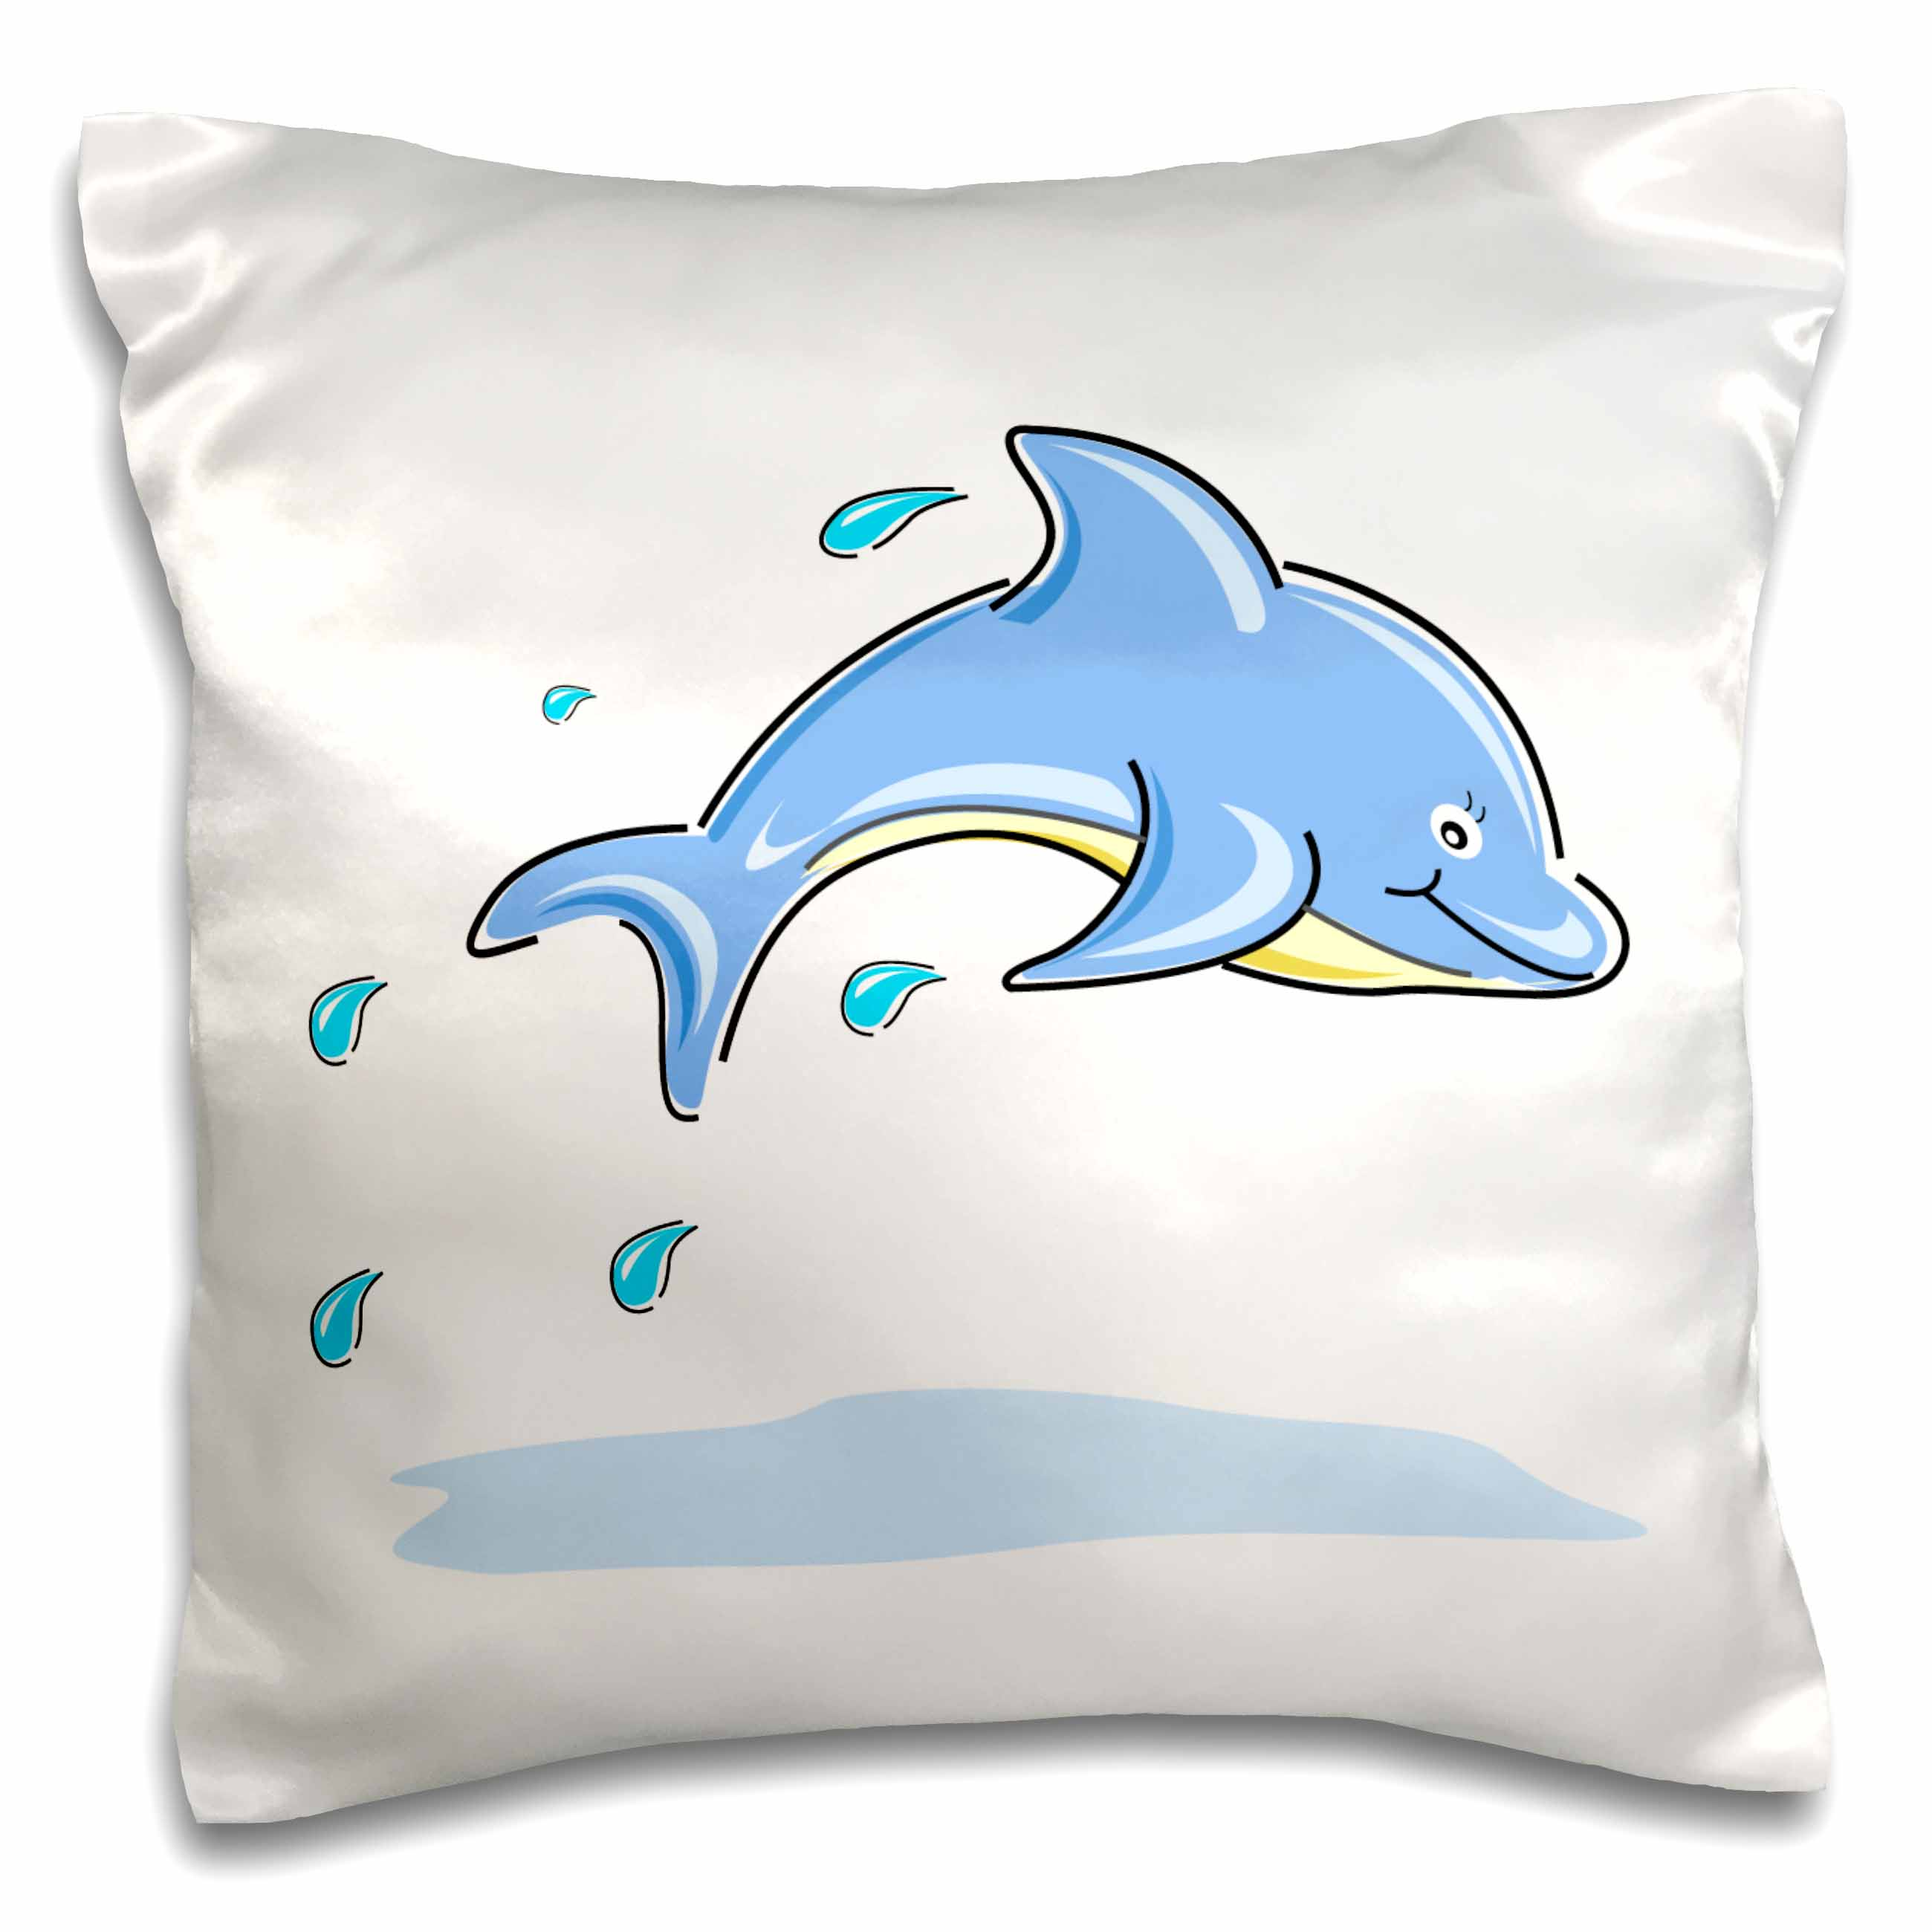 3dRose A Jumping Dolphin In Blue, Pillow Case, 16 by 16-inch